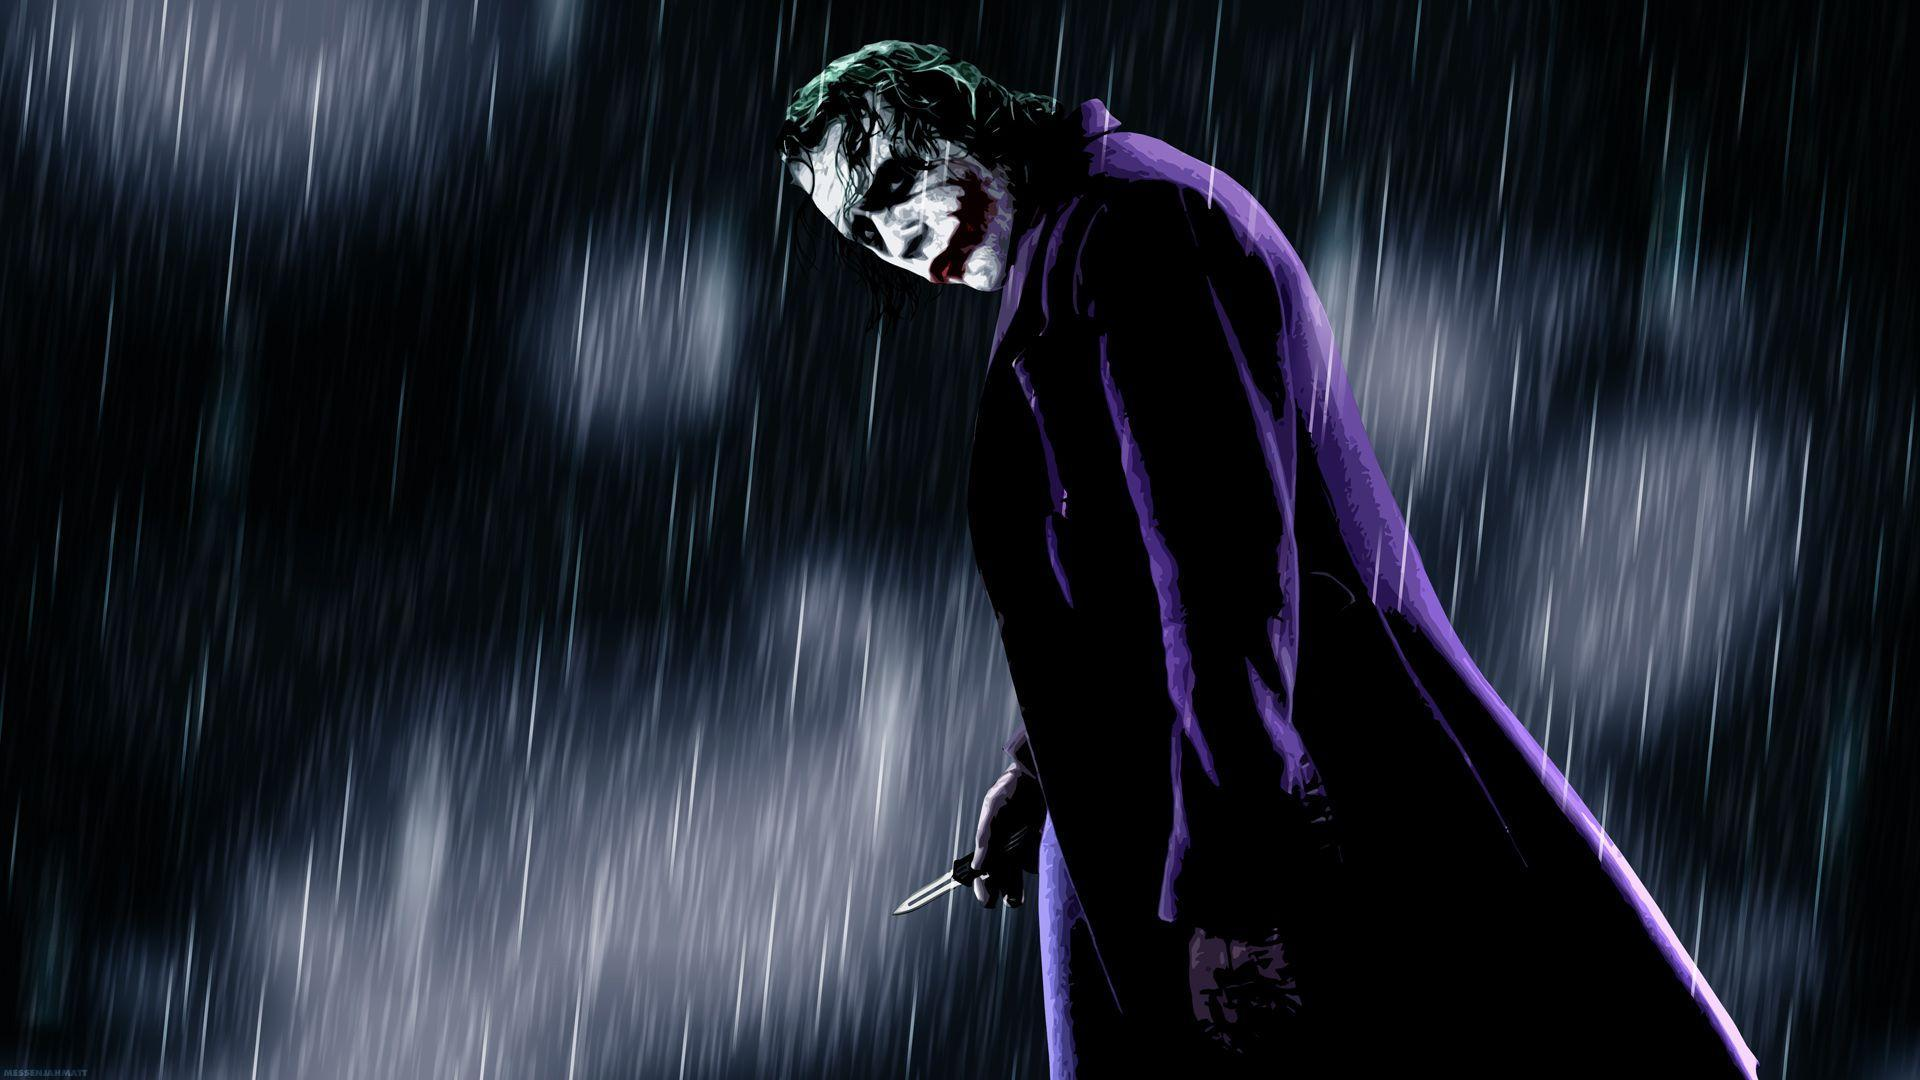 The Dark Knight Wallpapers Joker - Wallpaper Cave